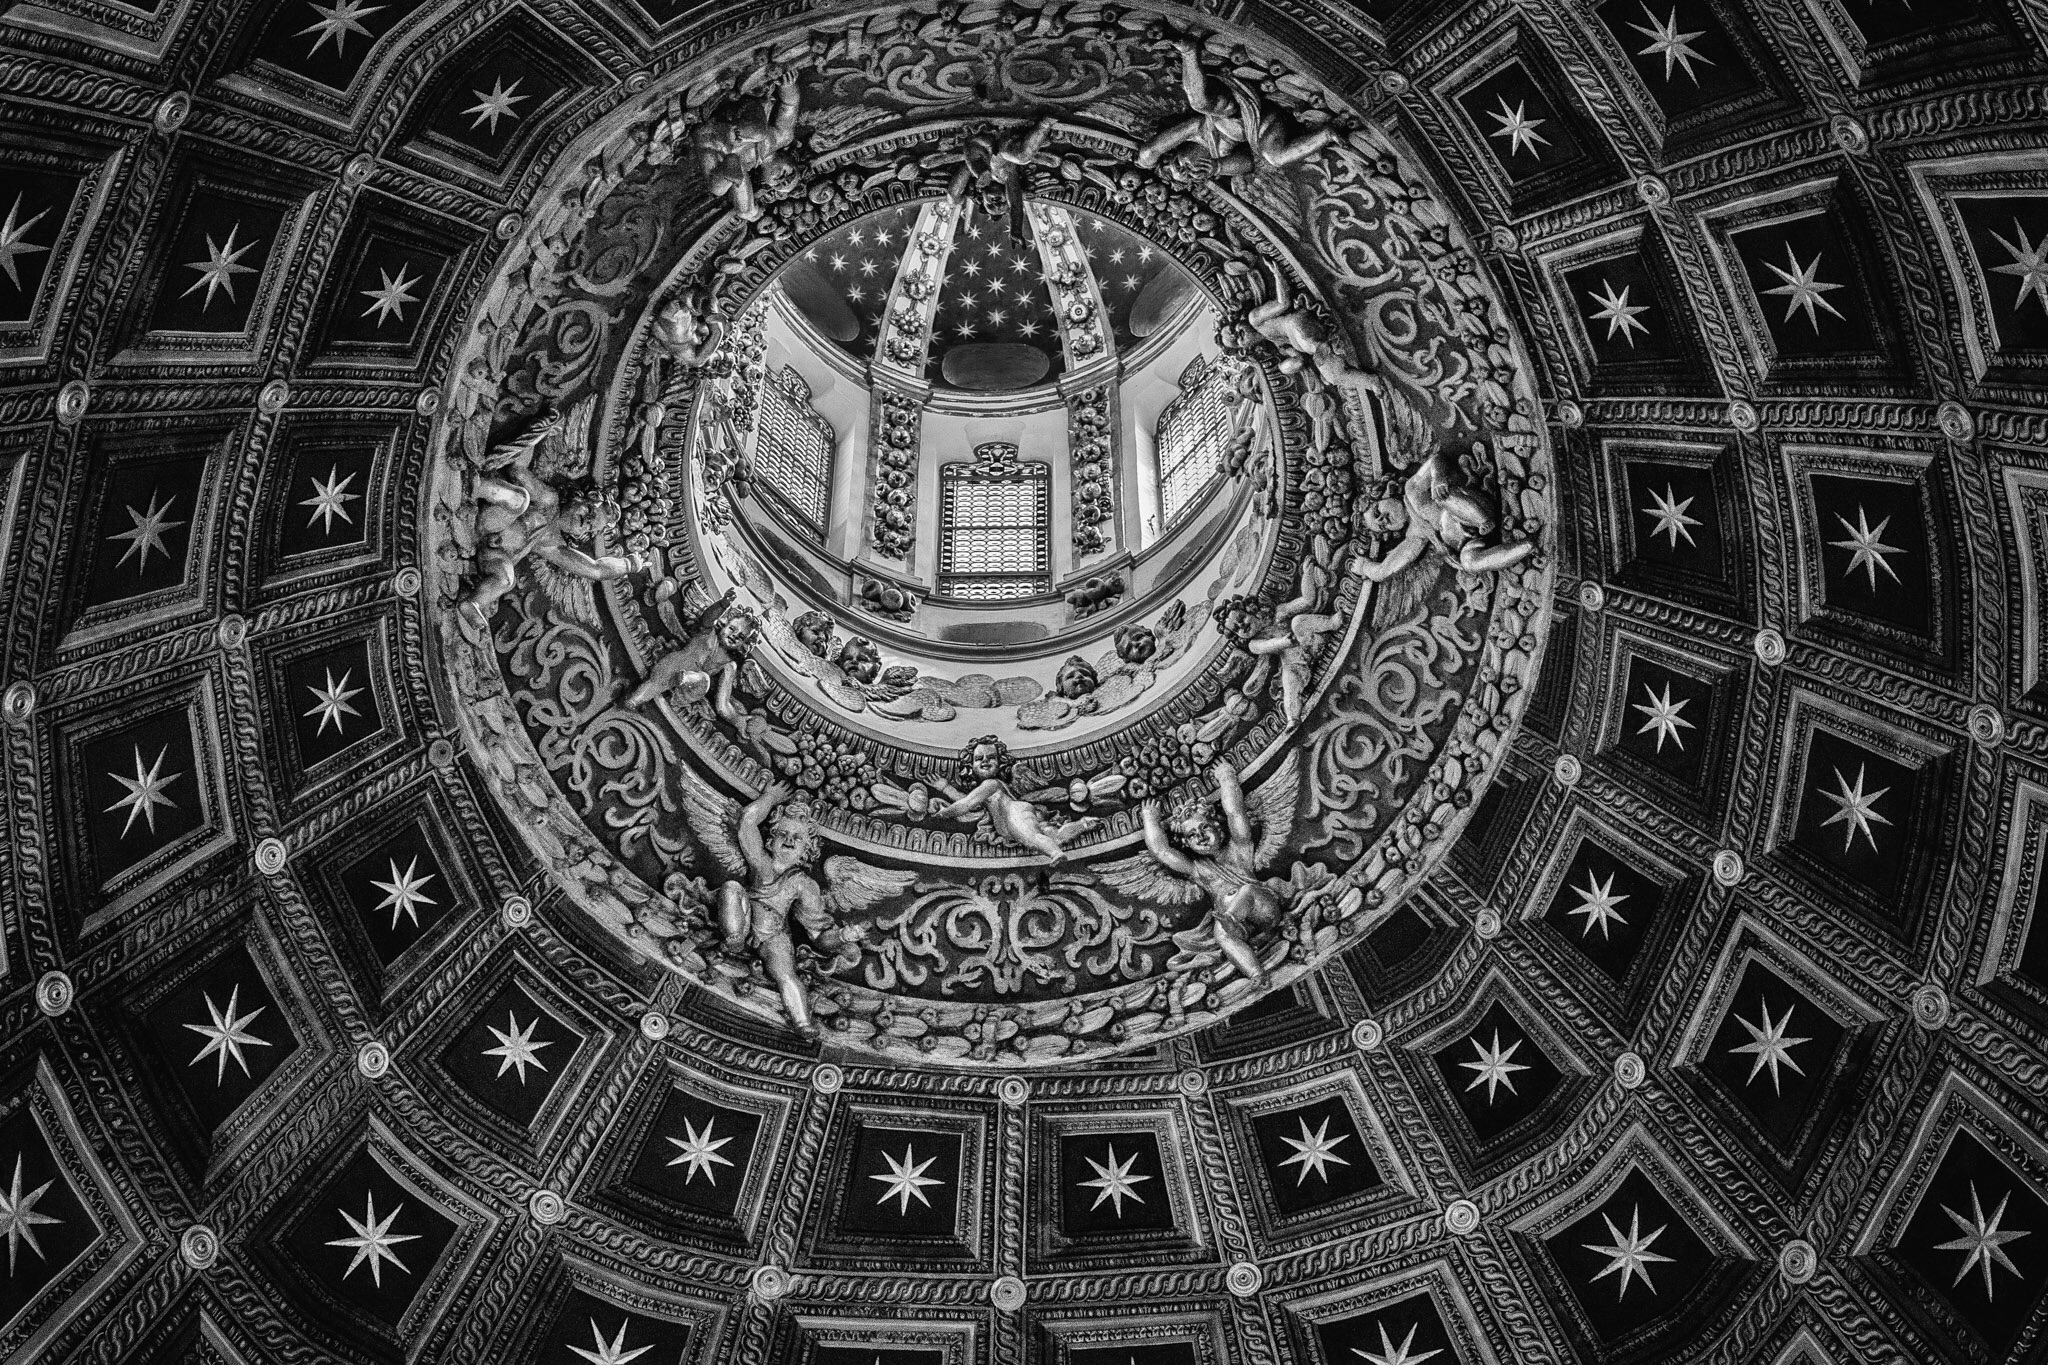 Duomo. Sienna. Just love the details in this stunning ceiling.